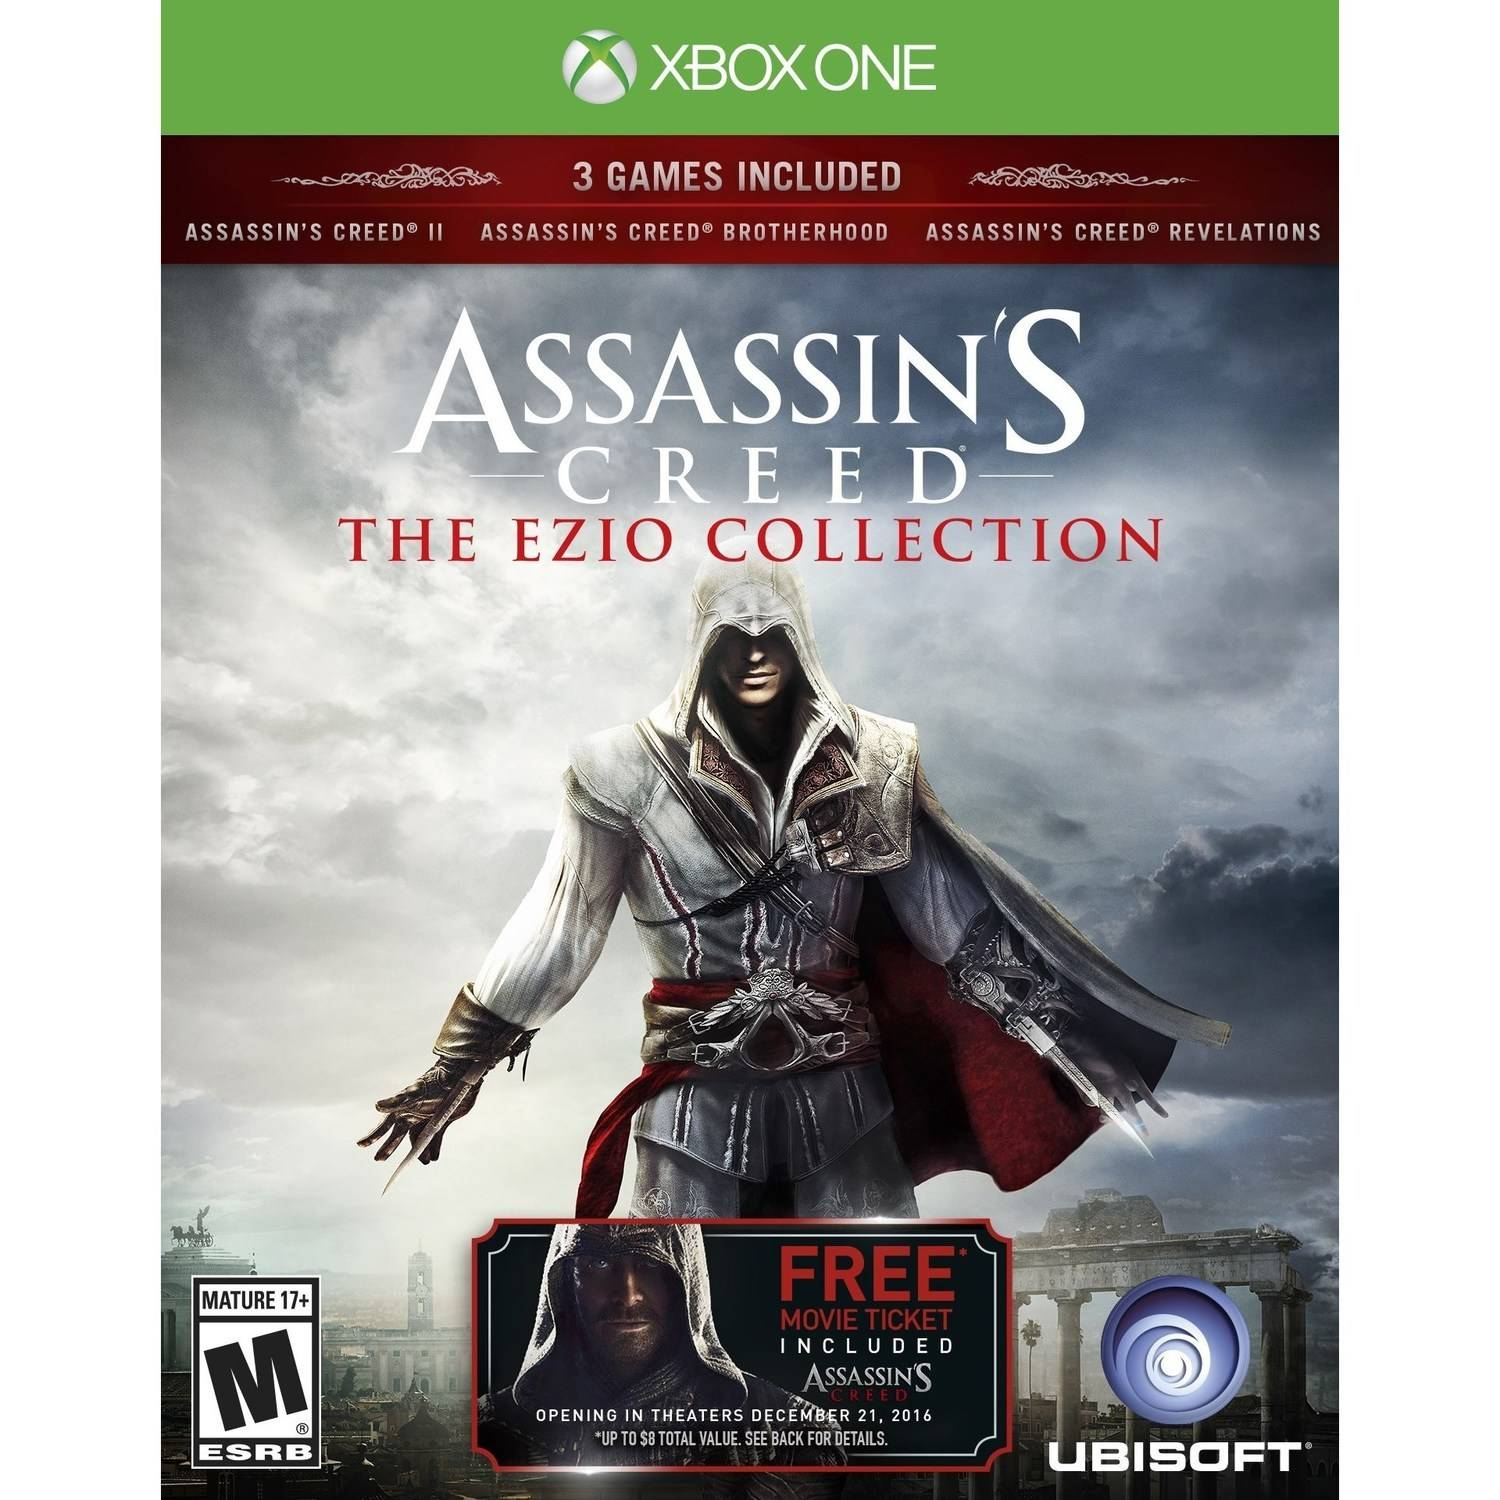 Assassin's Creed The Ezio Collection Xbox One by Ubisoft